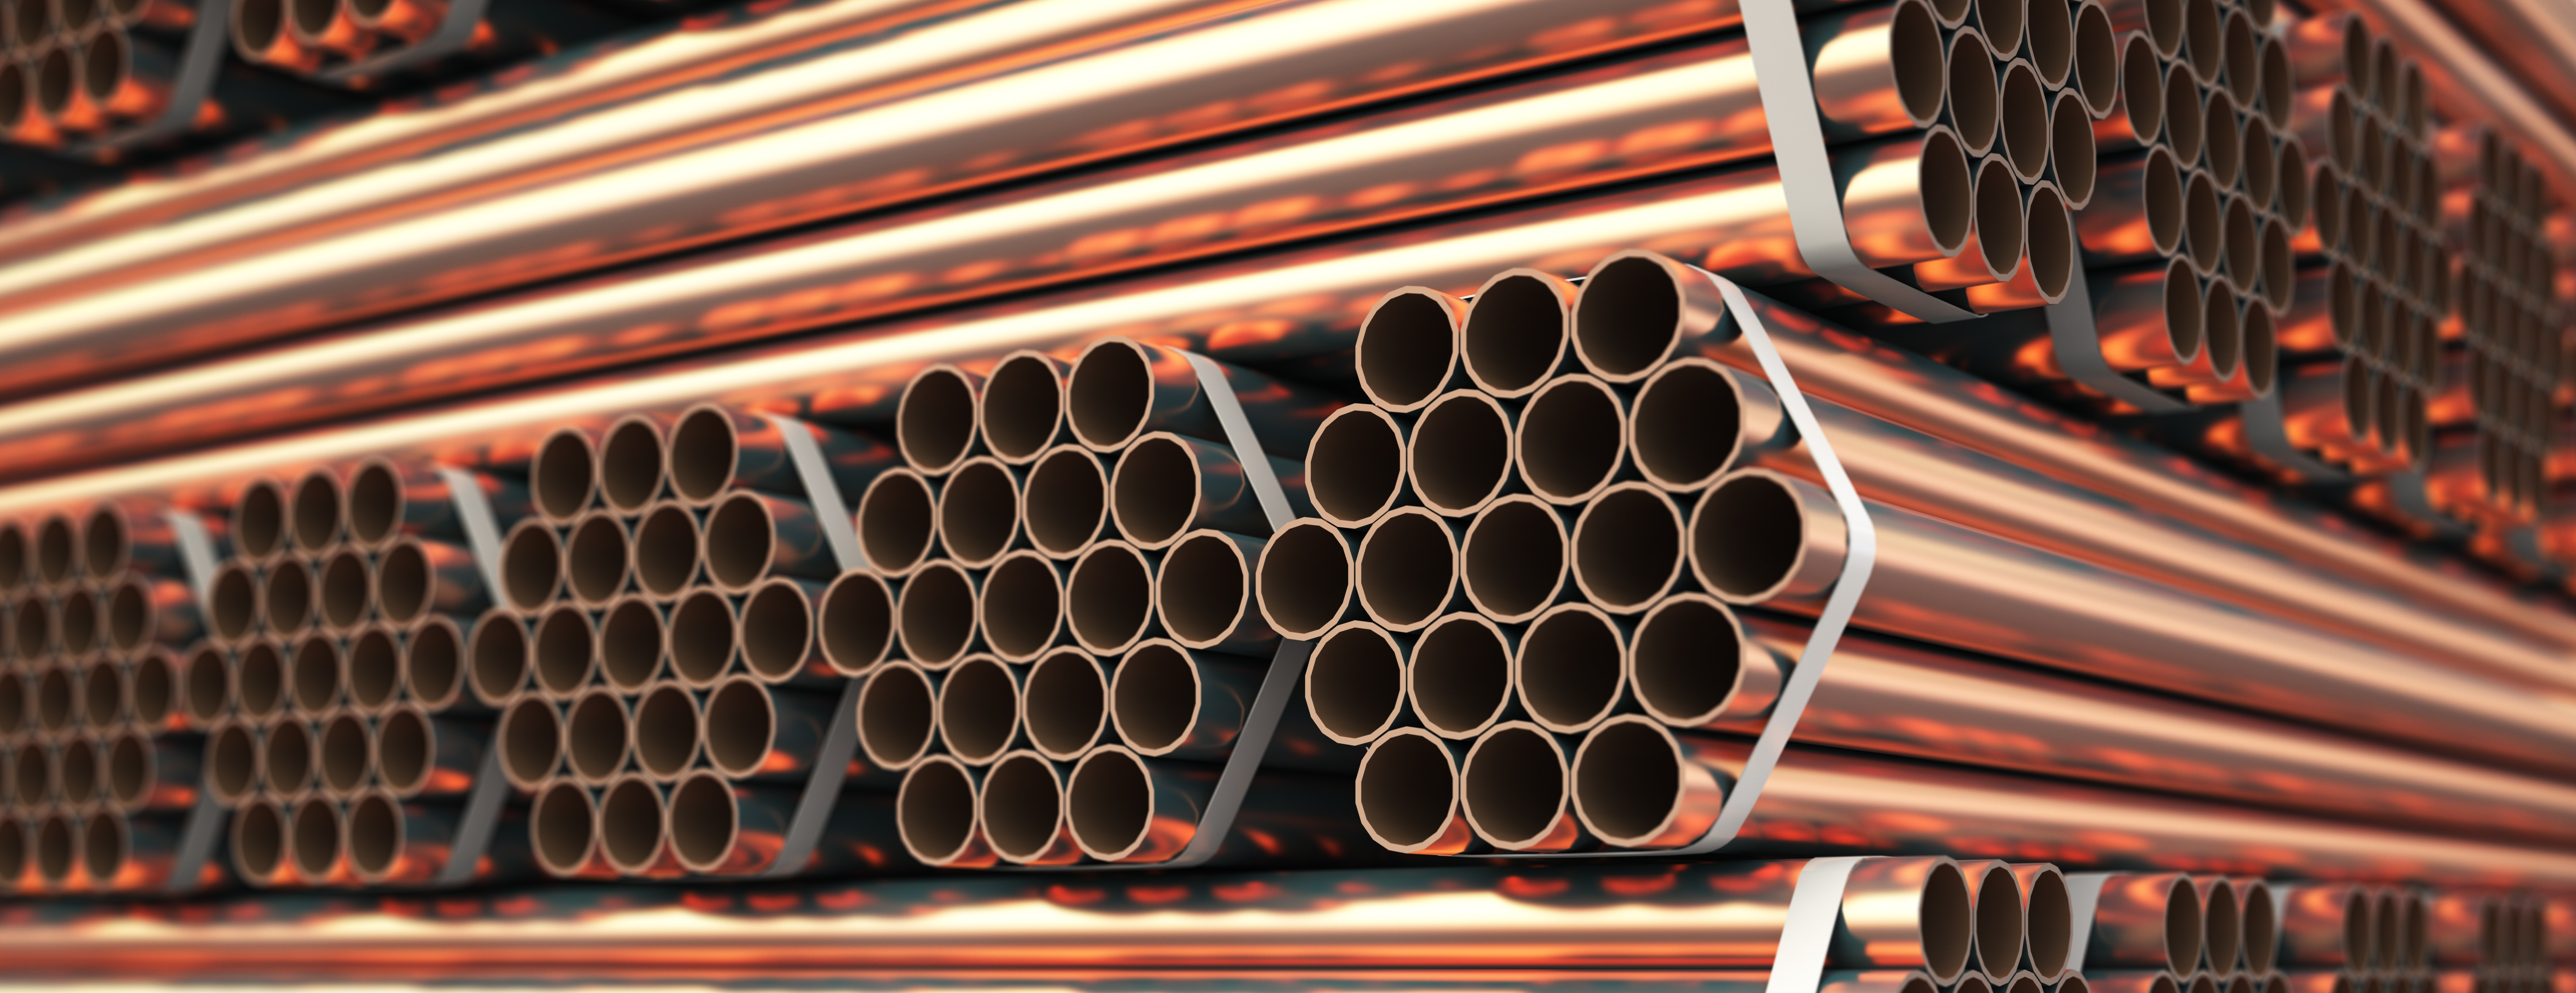 copper-or-bronze-metal-pipes-in-warehouse-heavy-no-R72KGT5